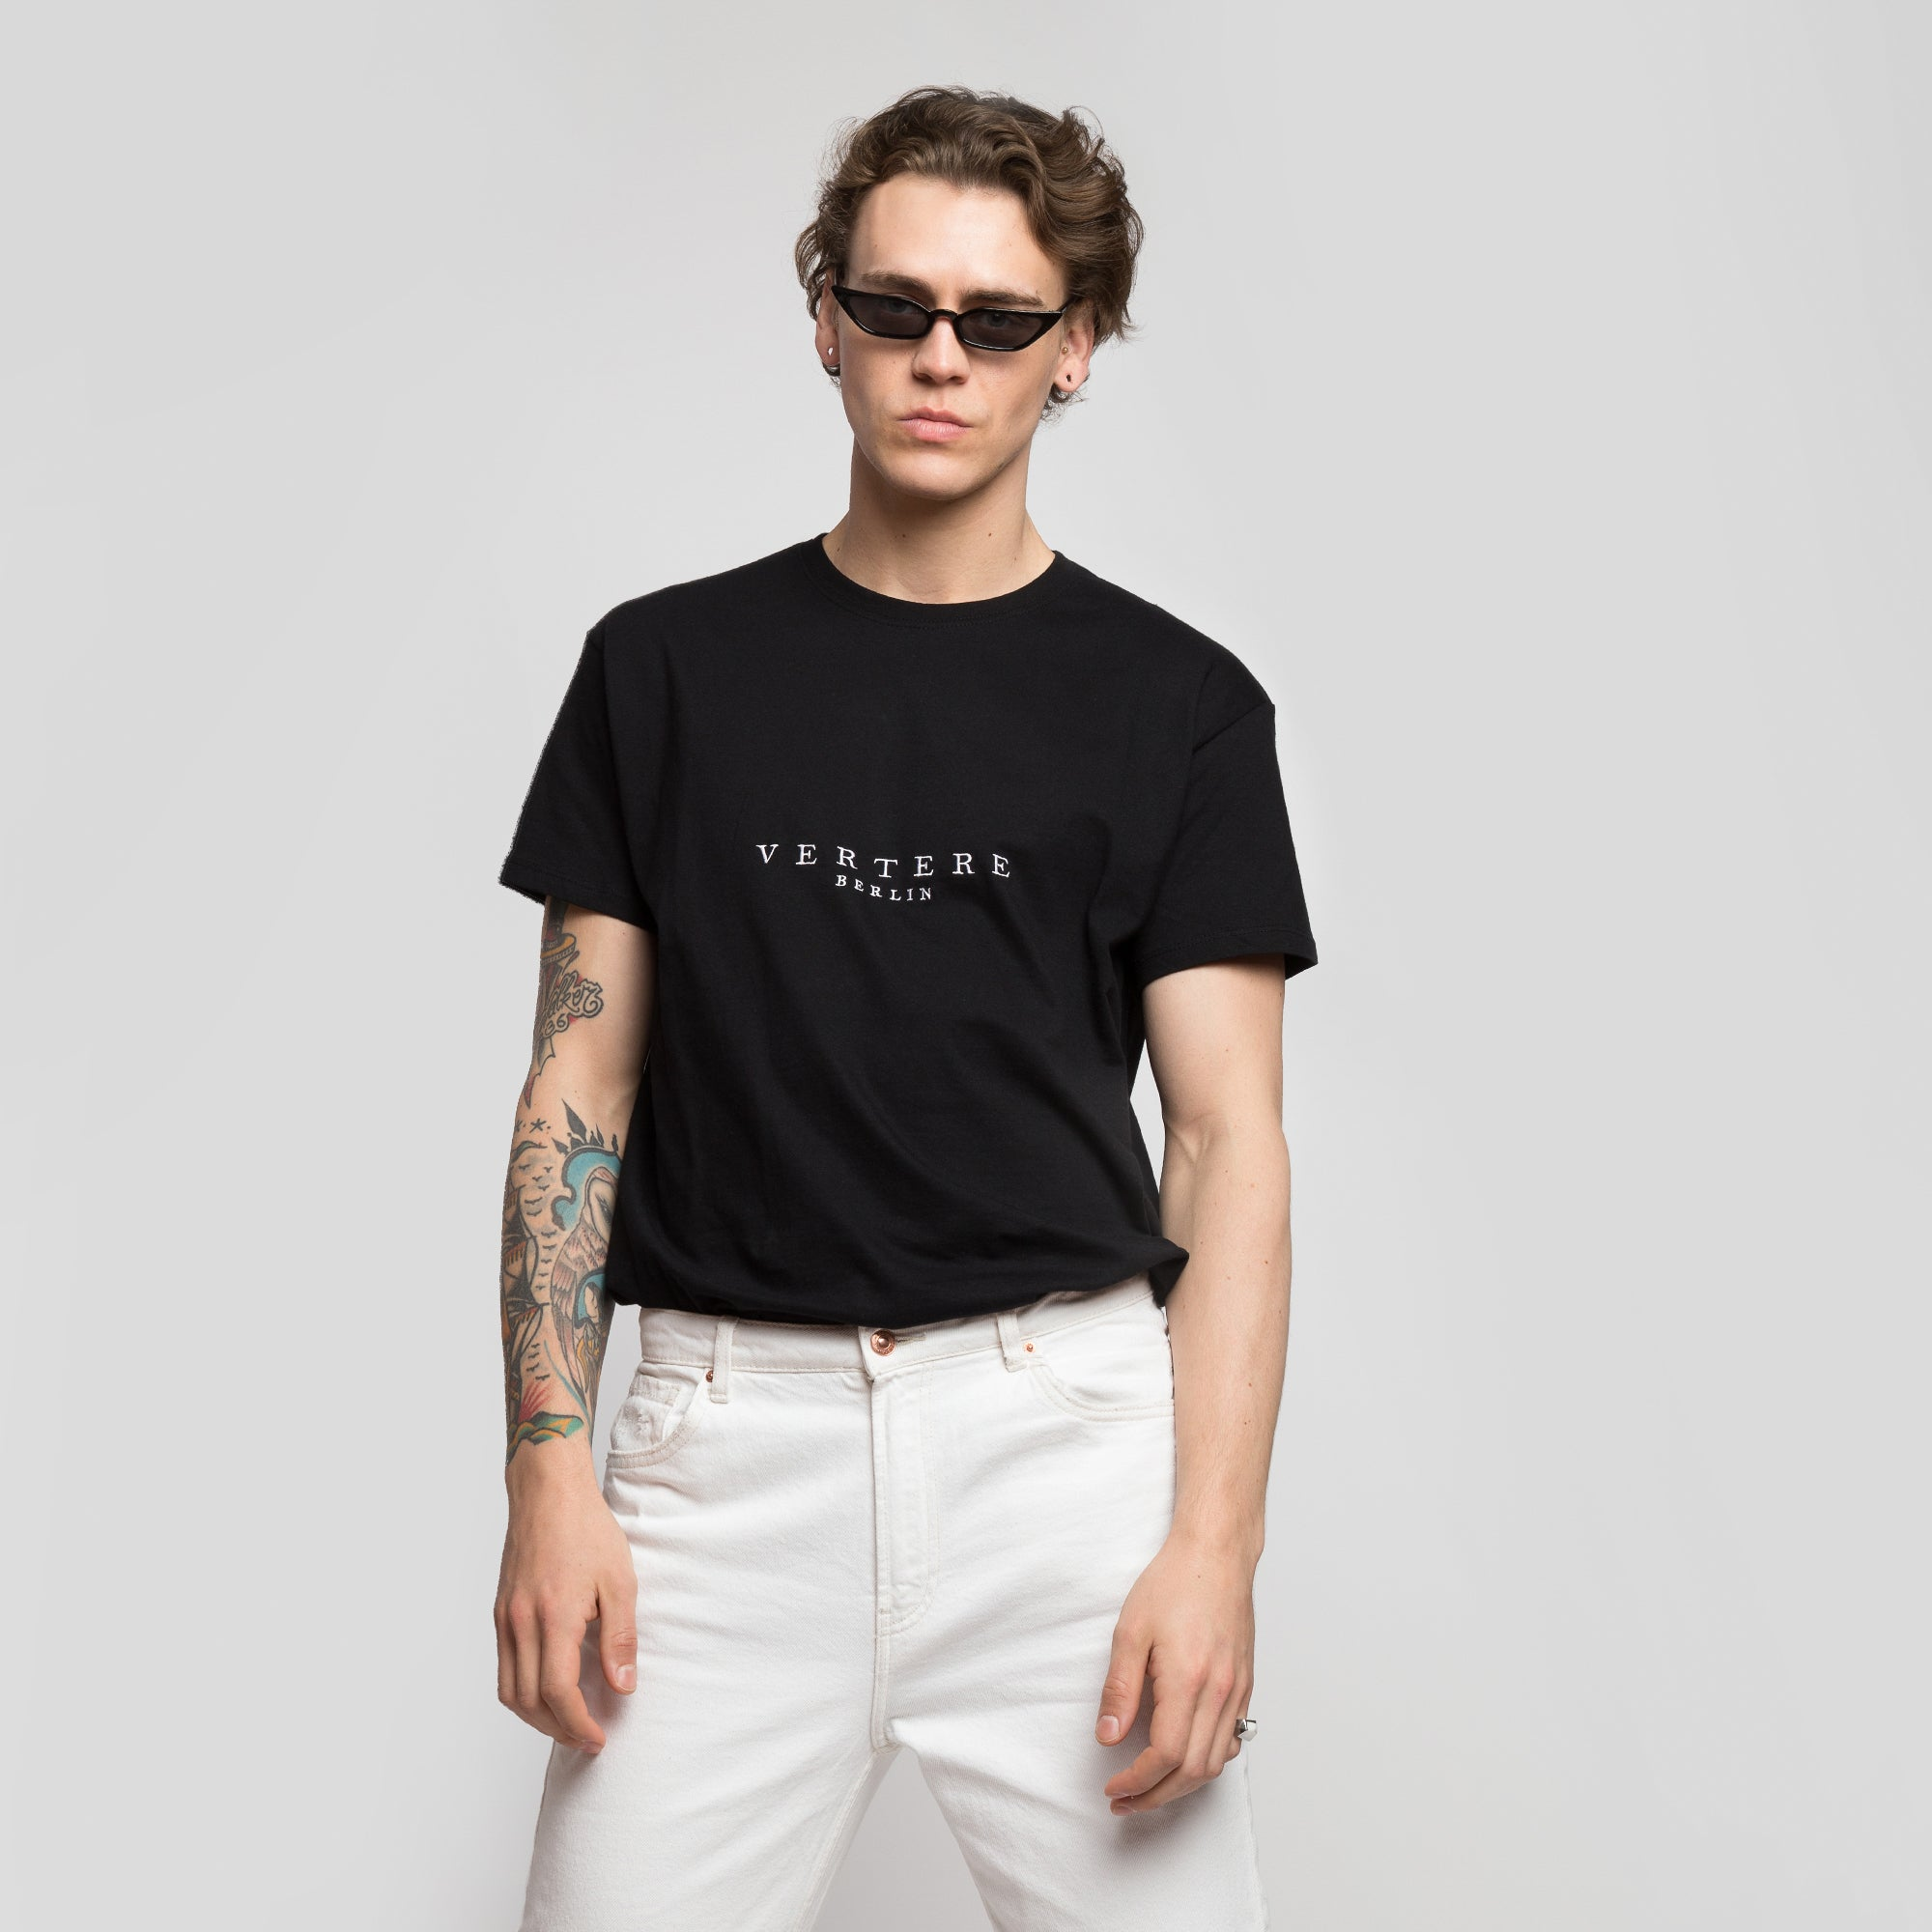 VERTERE BERLIN T-SHIRT - BLACK